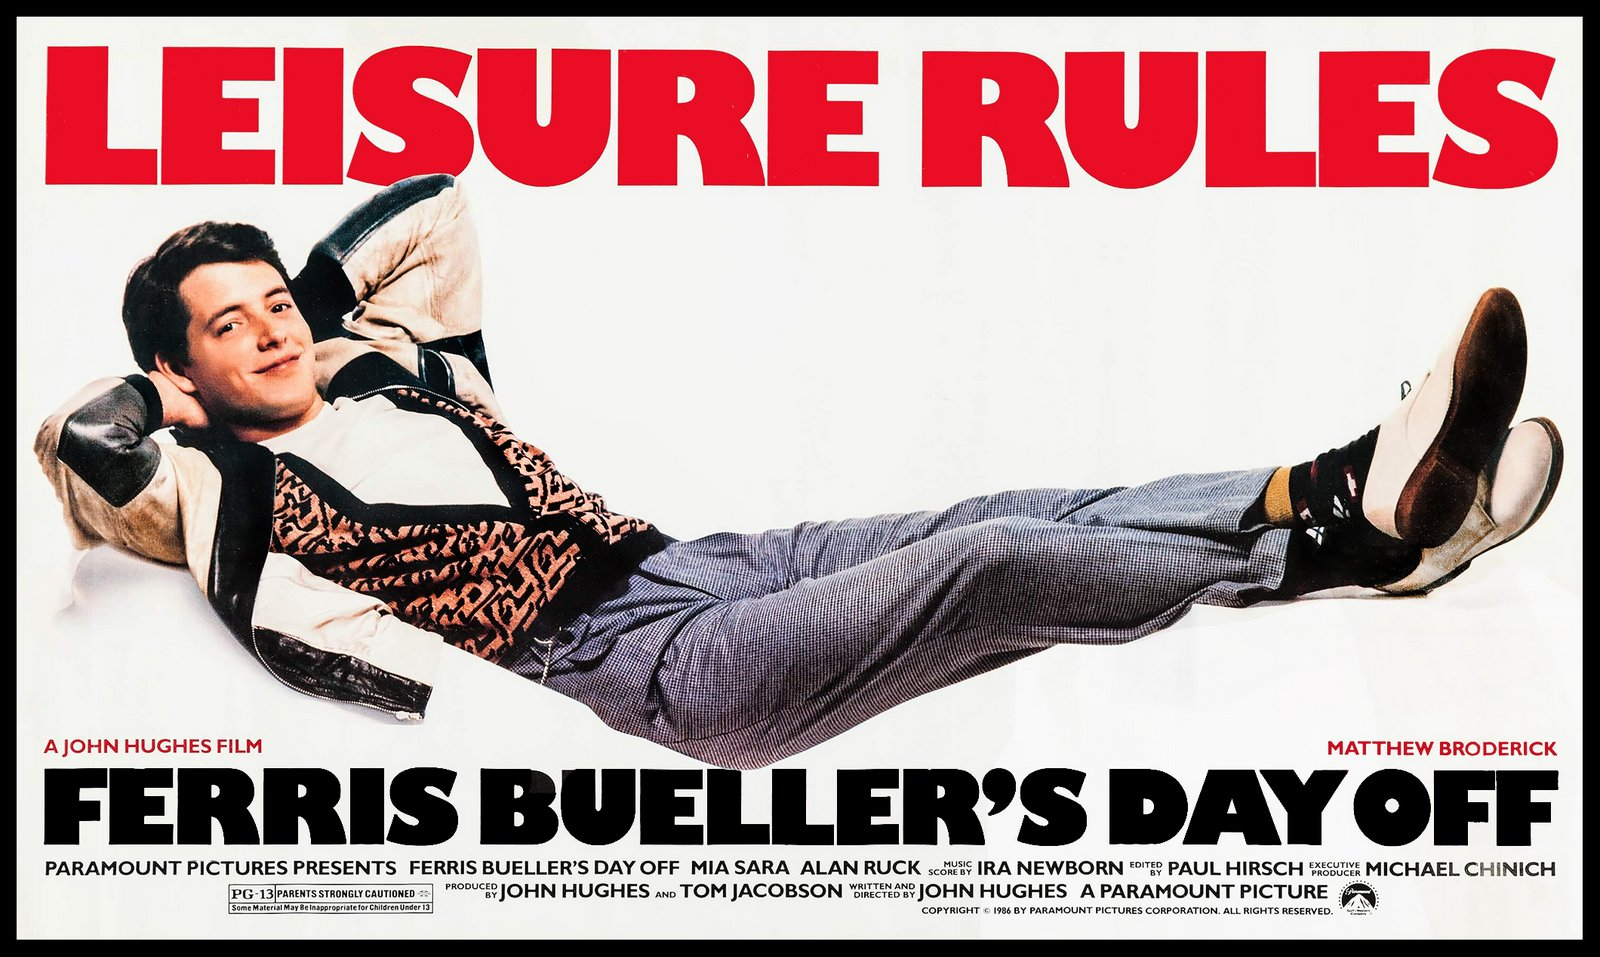 Leisure rules movie poster - Ferris Bueller's Day Off (1986)